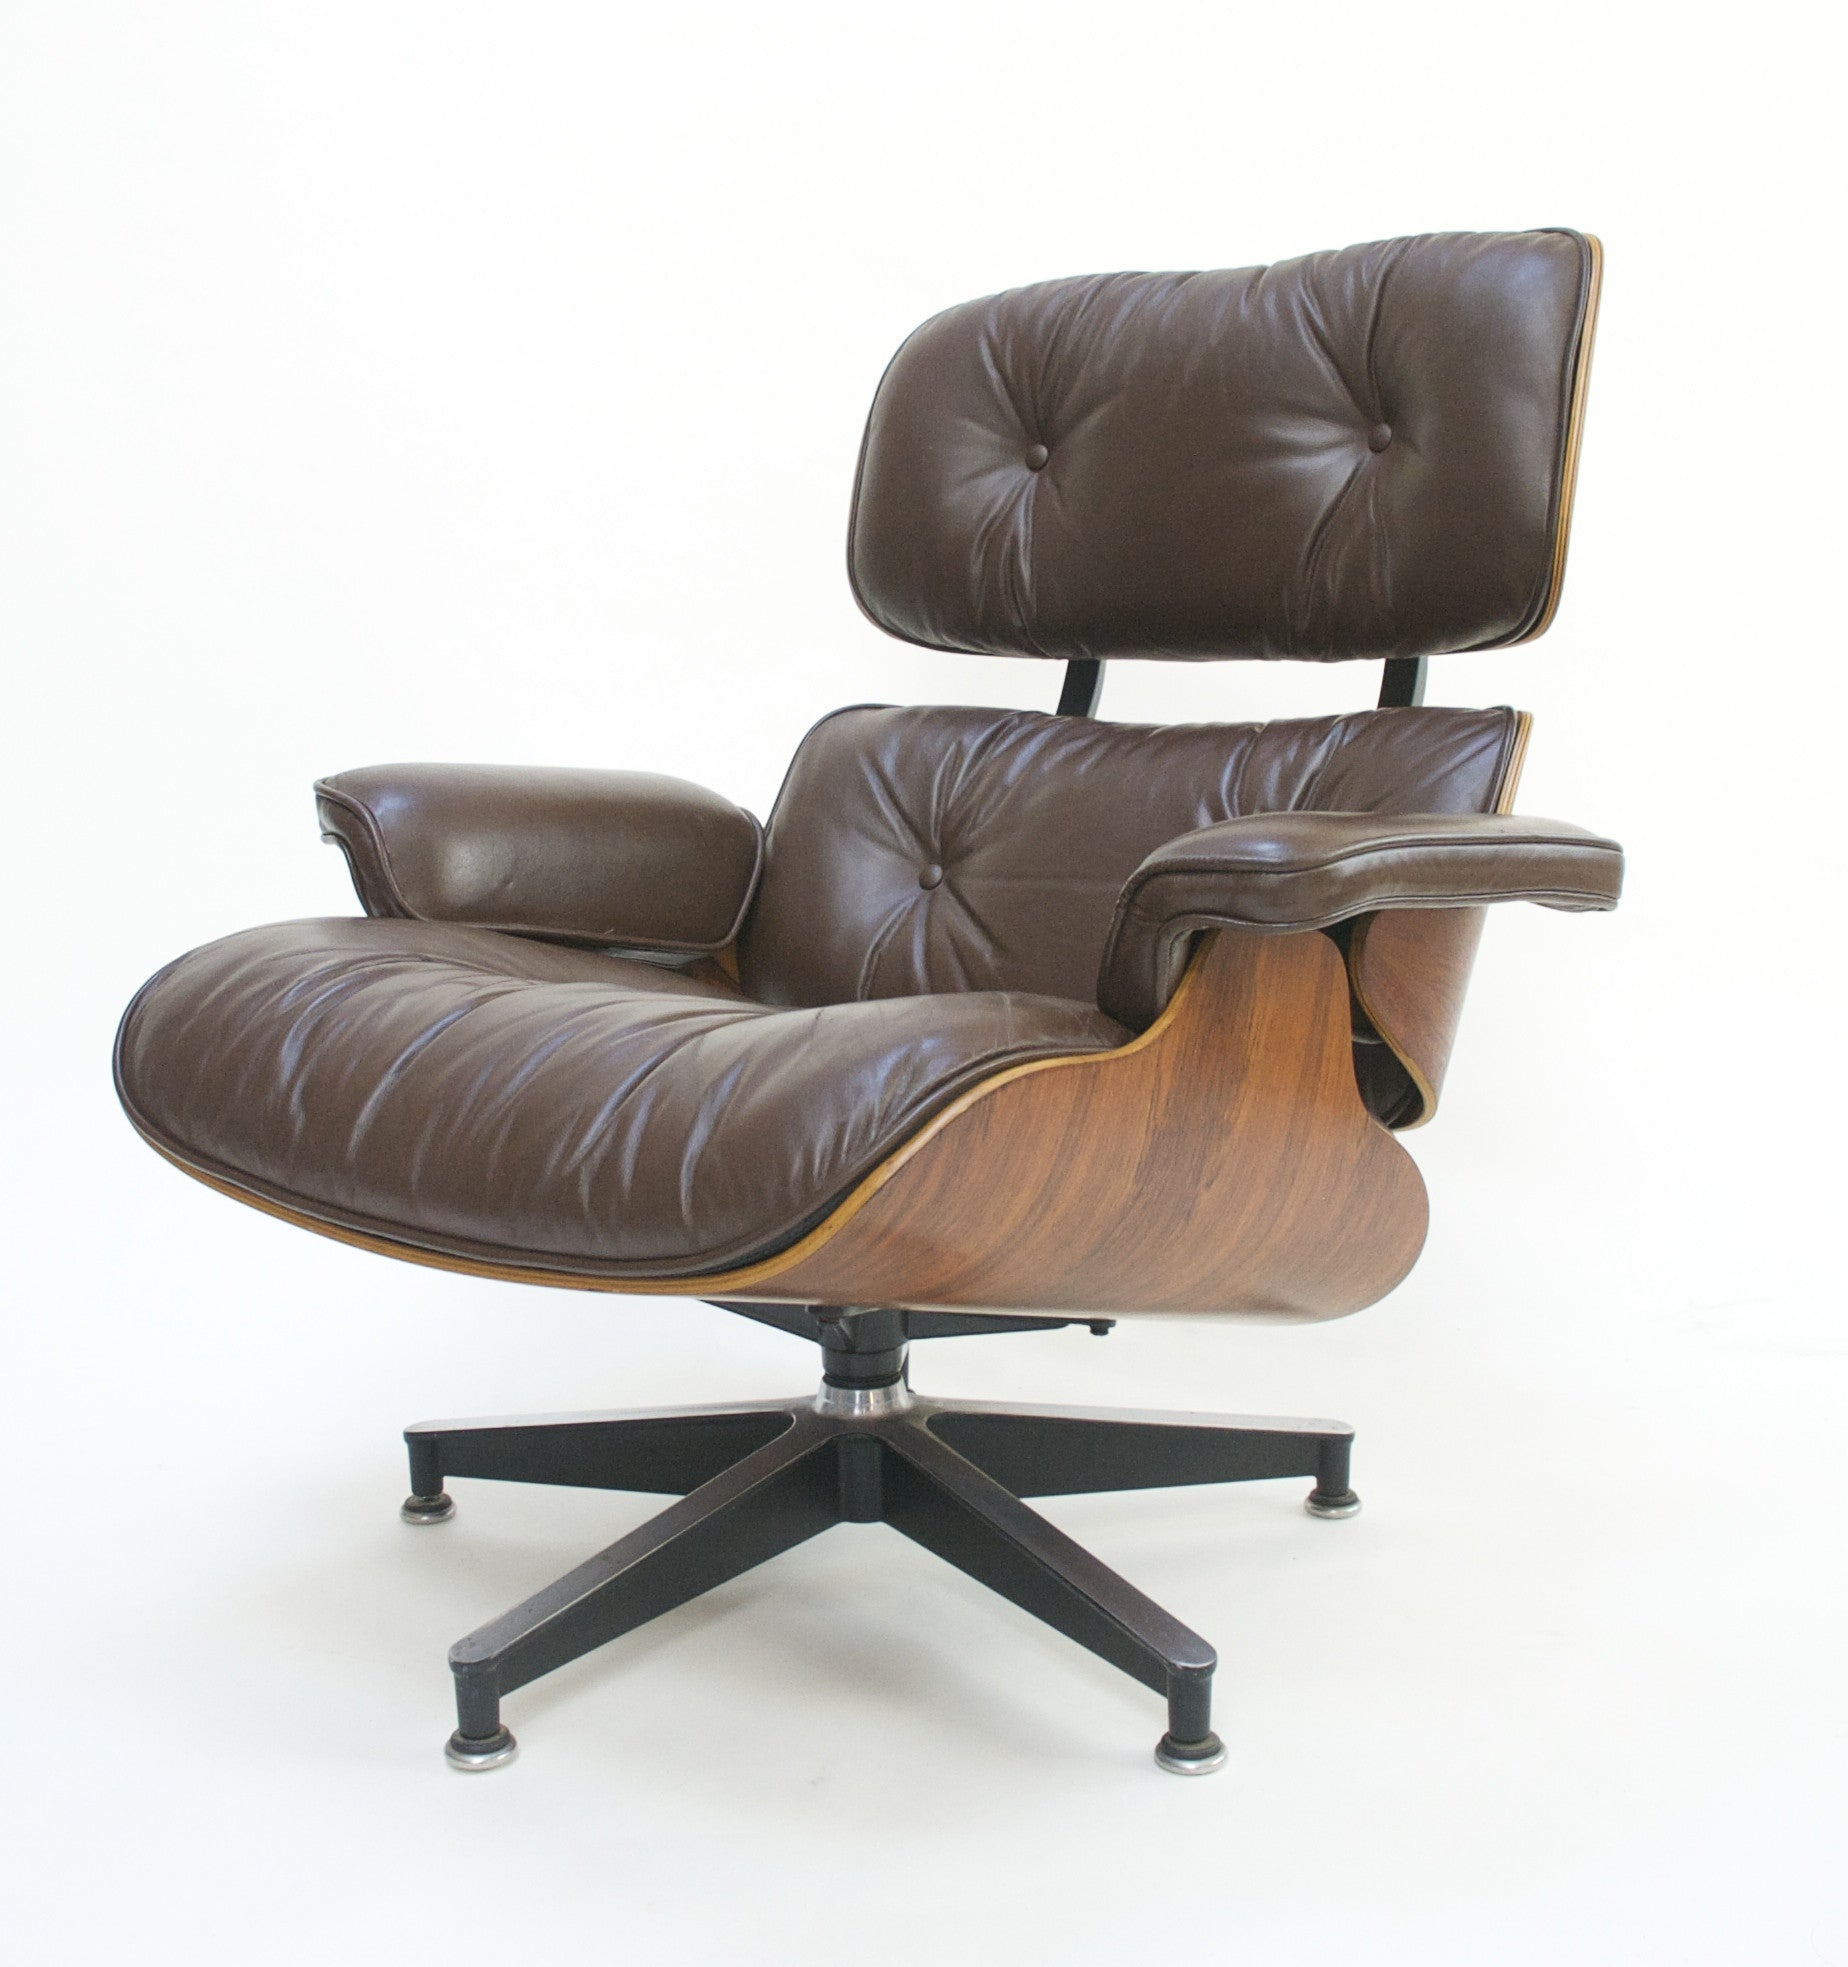 SOLD 1970's Herman Miller Eames Lounge Chair & Ottoman Rosewood 670 671 Brown